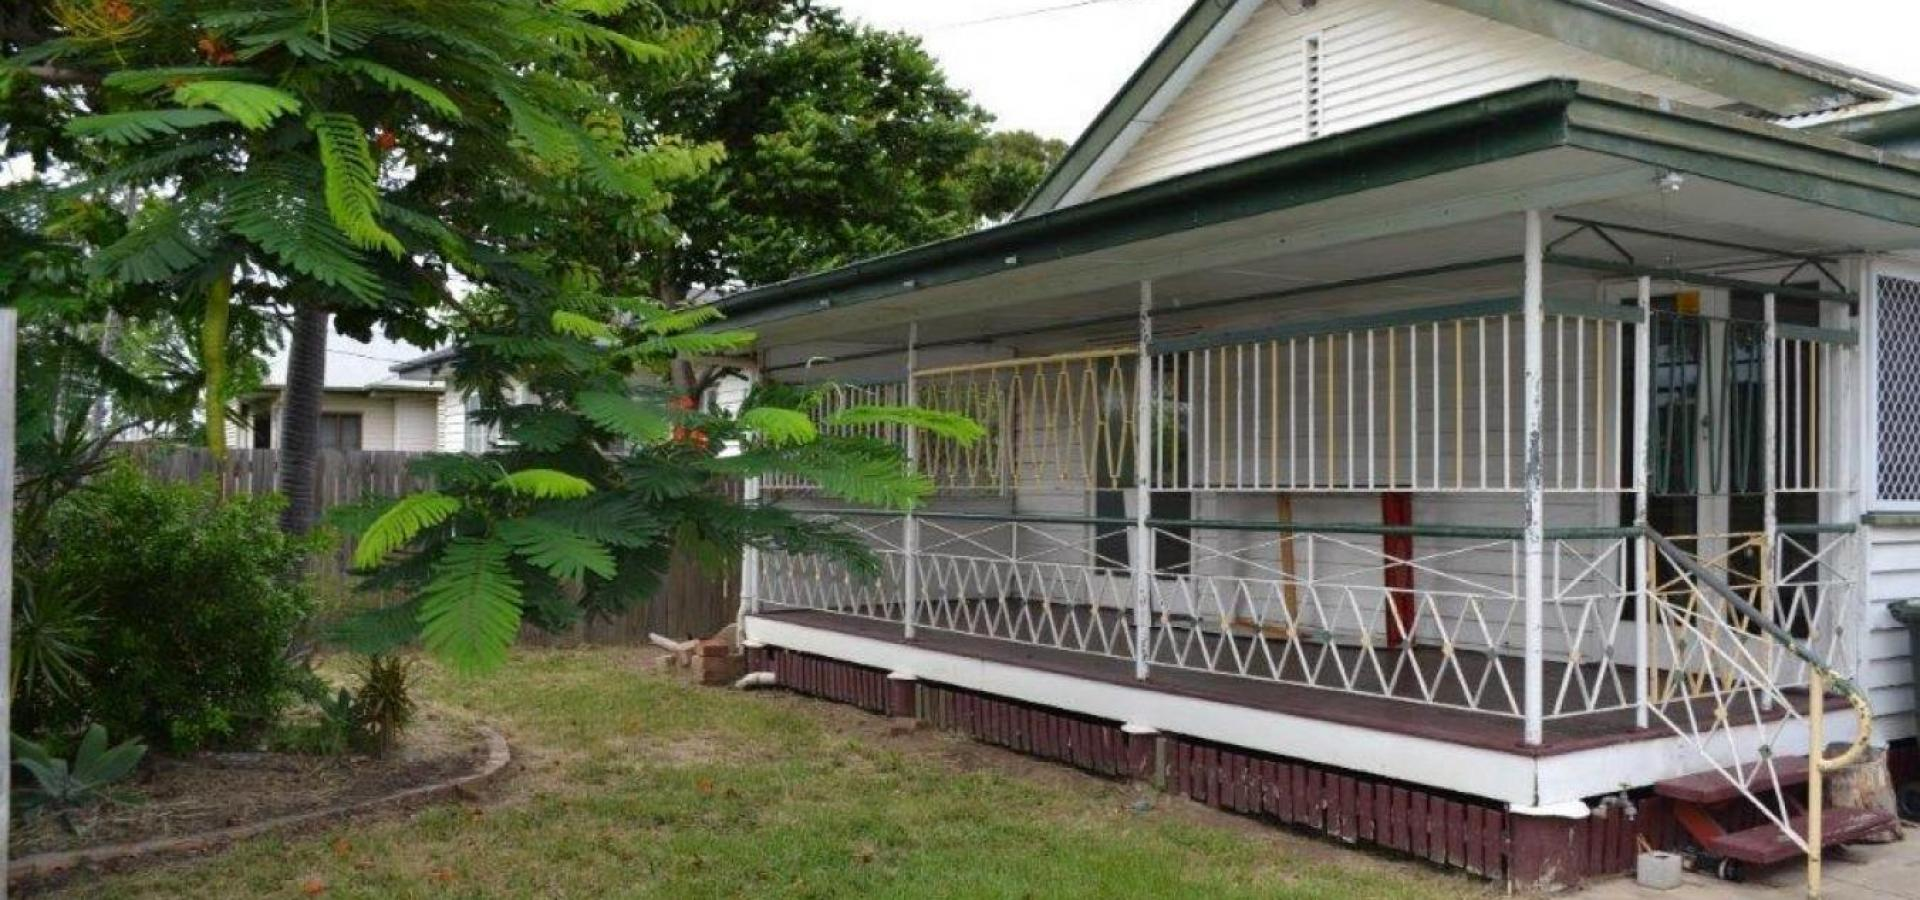 YOU DO THE MATHS !!  ONLY $195,000 AND RENTING FOR $290.00 PW